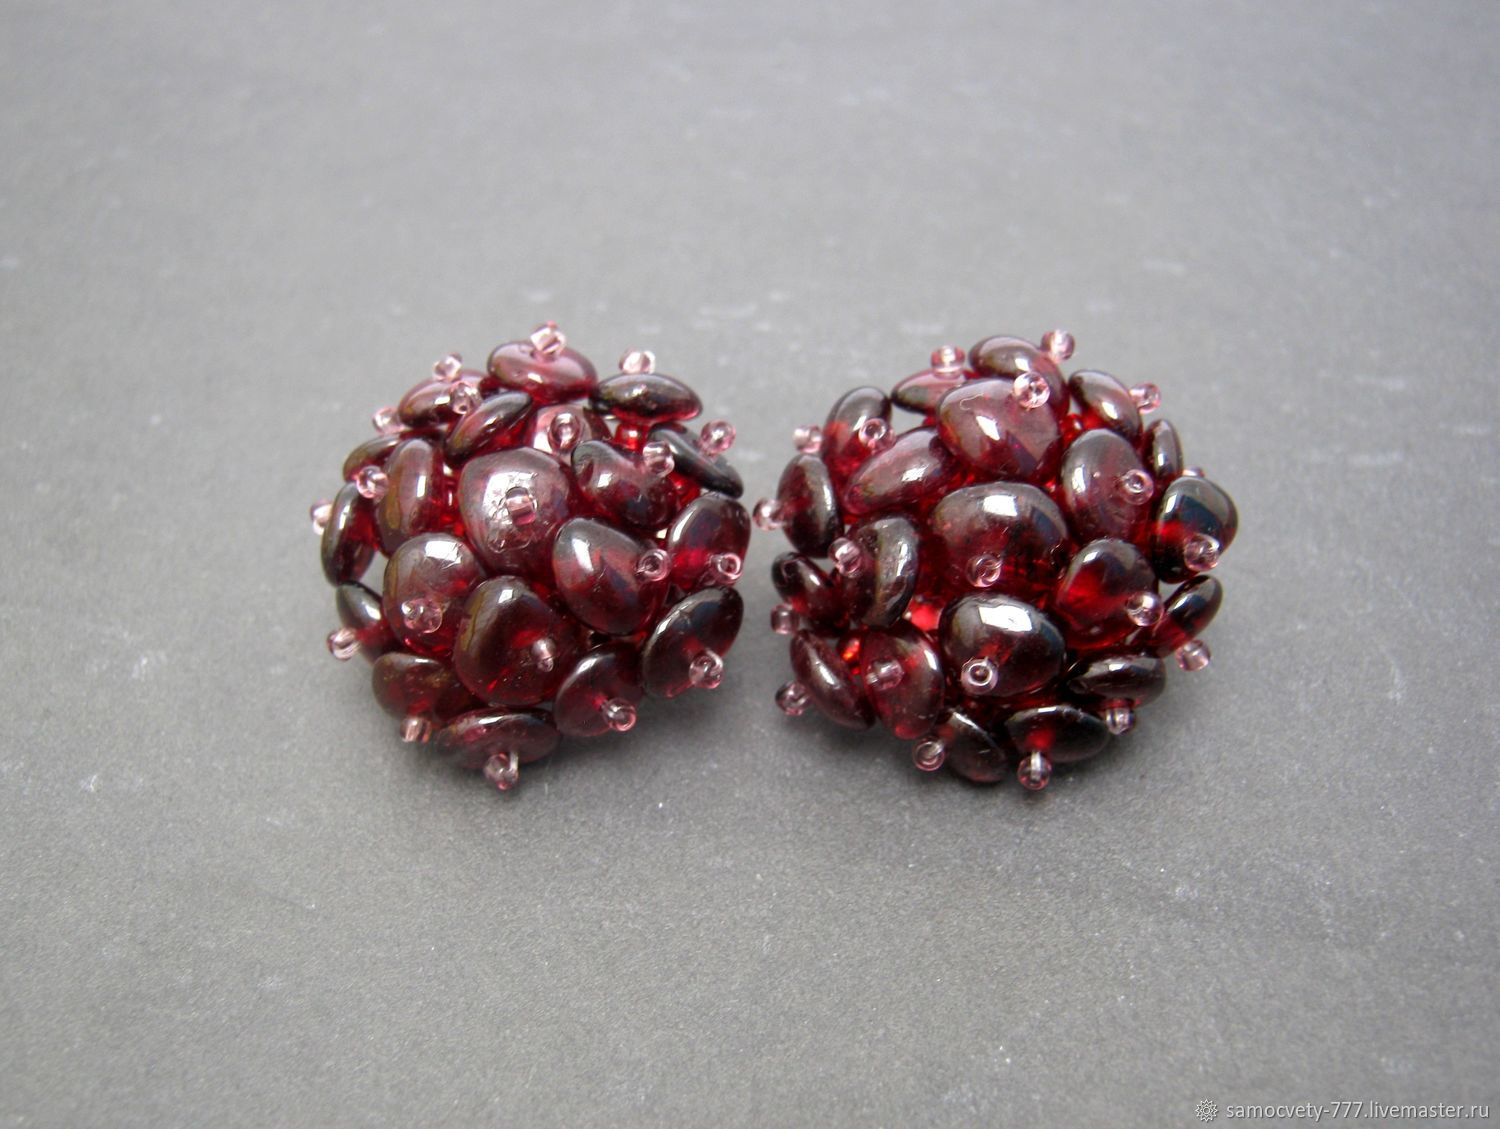 100g Natural Crystal Red Garnet Ore Energy Rough Chakra Energy Stone  Fengshui Products Wholesale Red Garnet Ore Energy Rough Online with  $9.99/Piece on ...